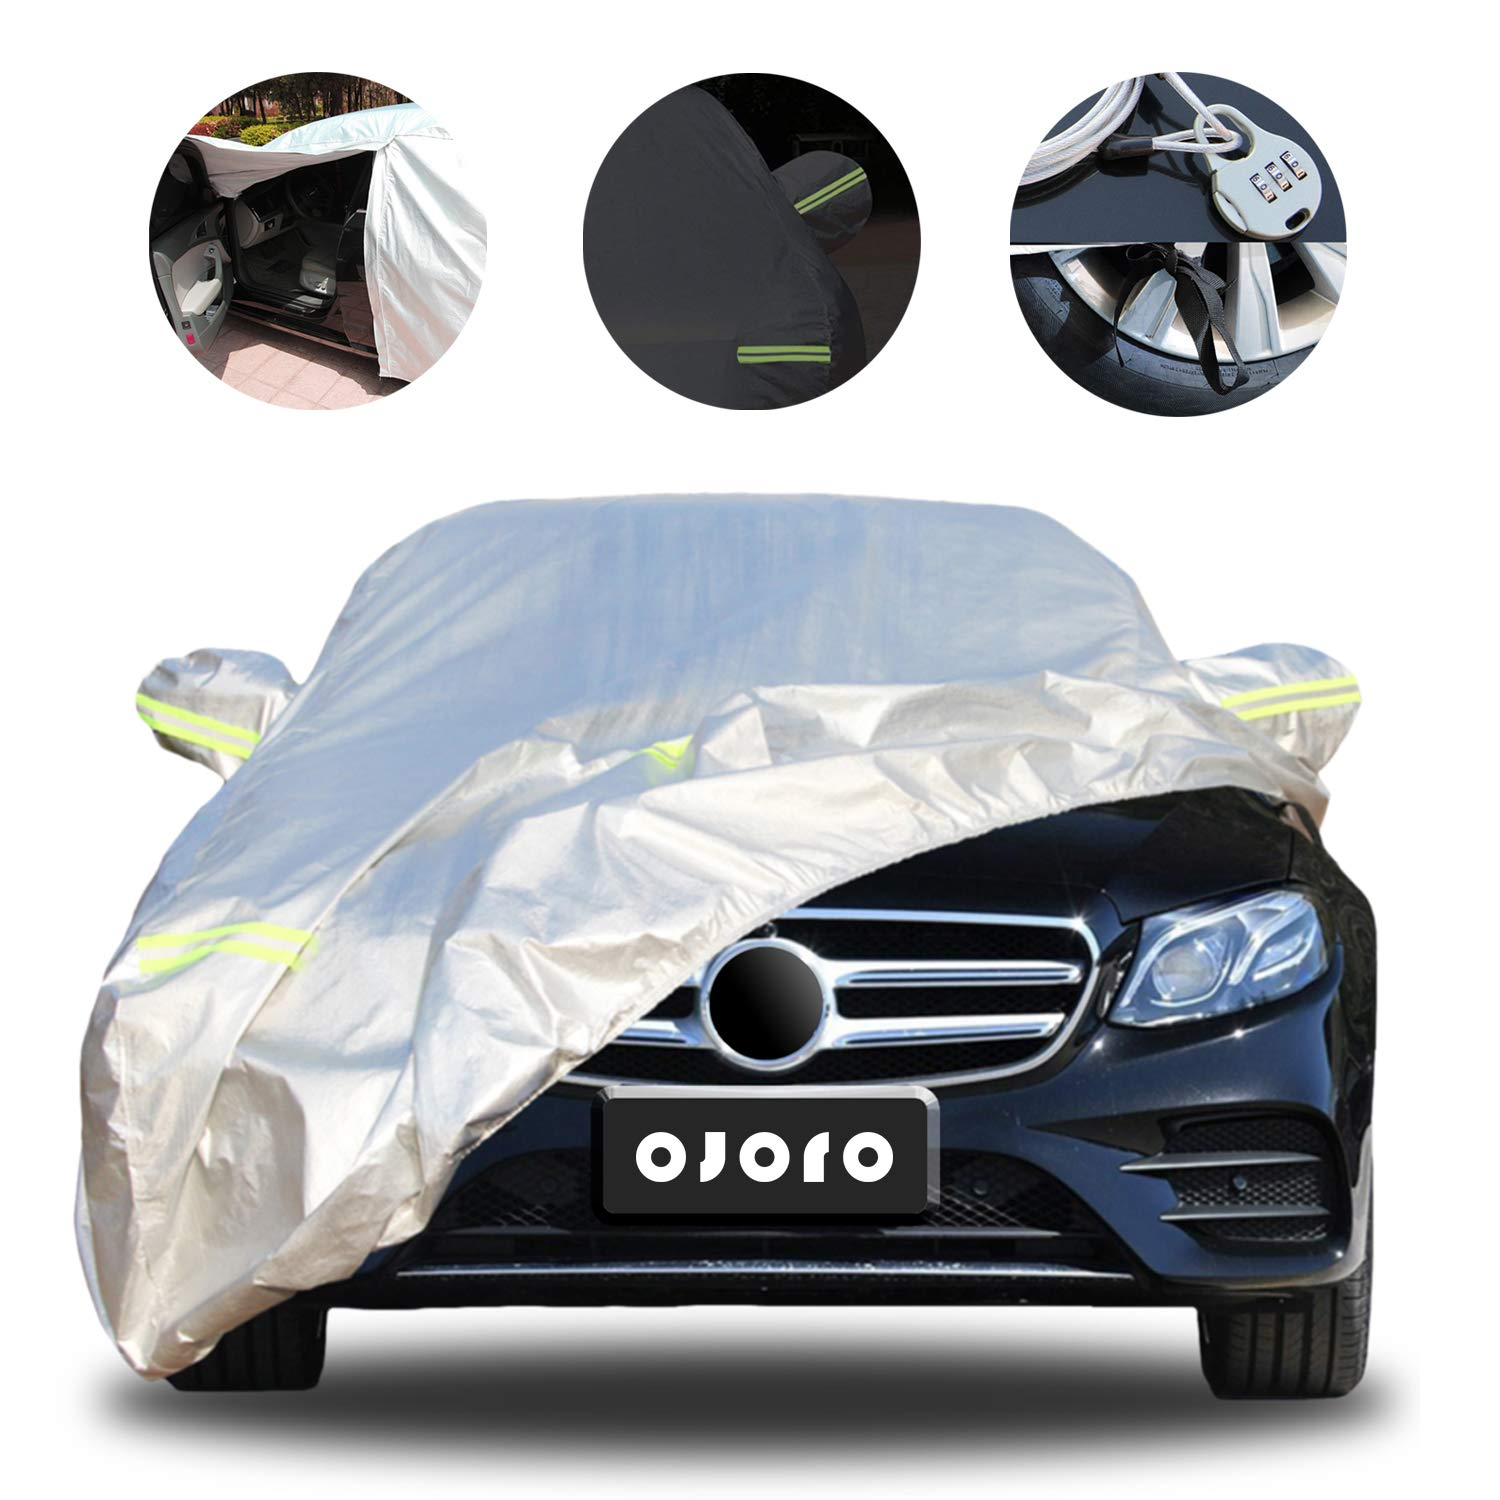 Up to 485 cm Car Cover Sedan Car Sun Protection Waterproof//Windproof//Scratch Resistant//Reflective Strips for Automobiles Use 459-485cm Silver Universal Full Car Covers with Zipper Door